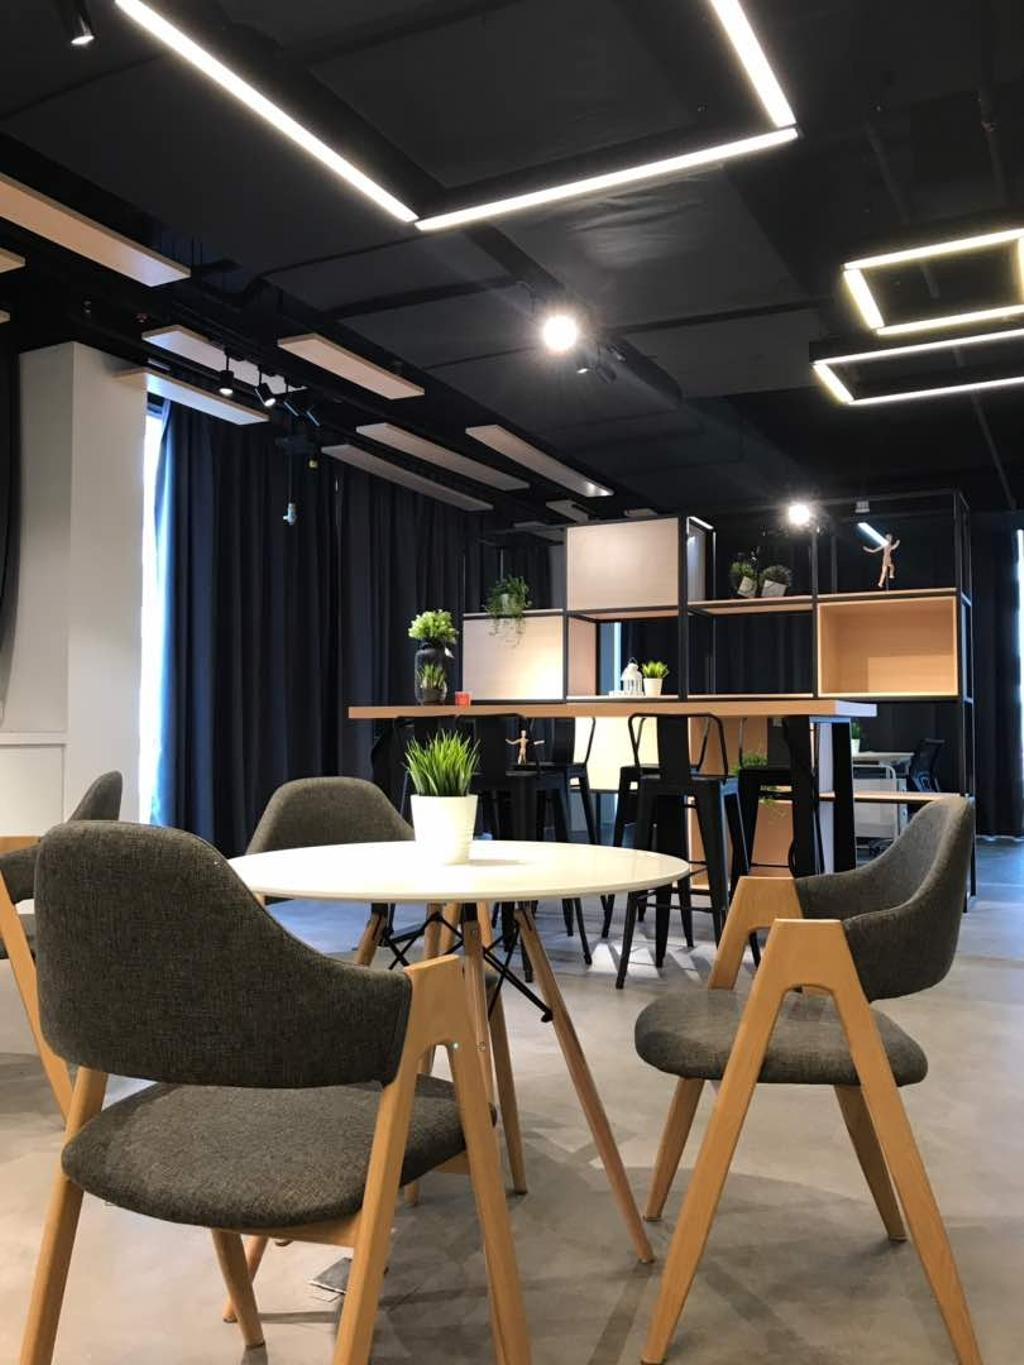 We Pays Office, Mahkota Parade, Commercial, Interior Designer, Trivia Group Sdn. Bhd., Modern, Contemporary, Flora, Jar, Plant, Potted Plant, Pottery, Vase, Chair, Furniture, Dining Table, Table